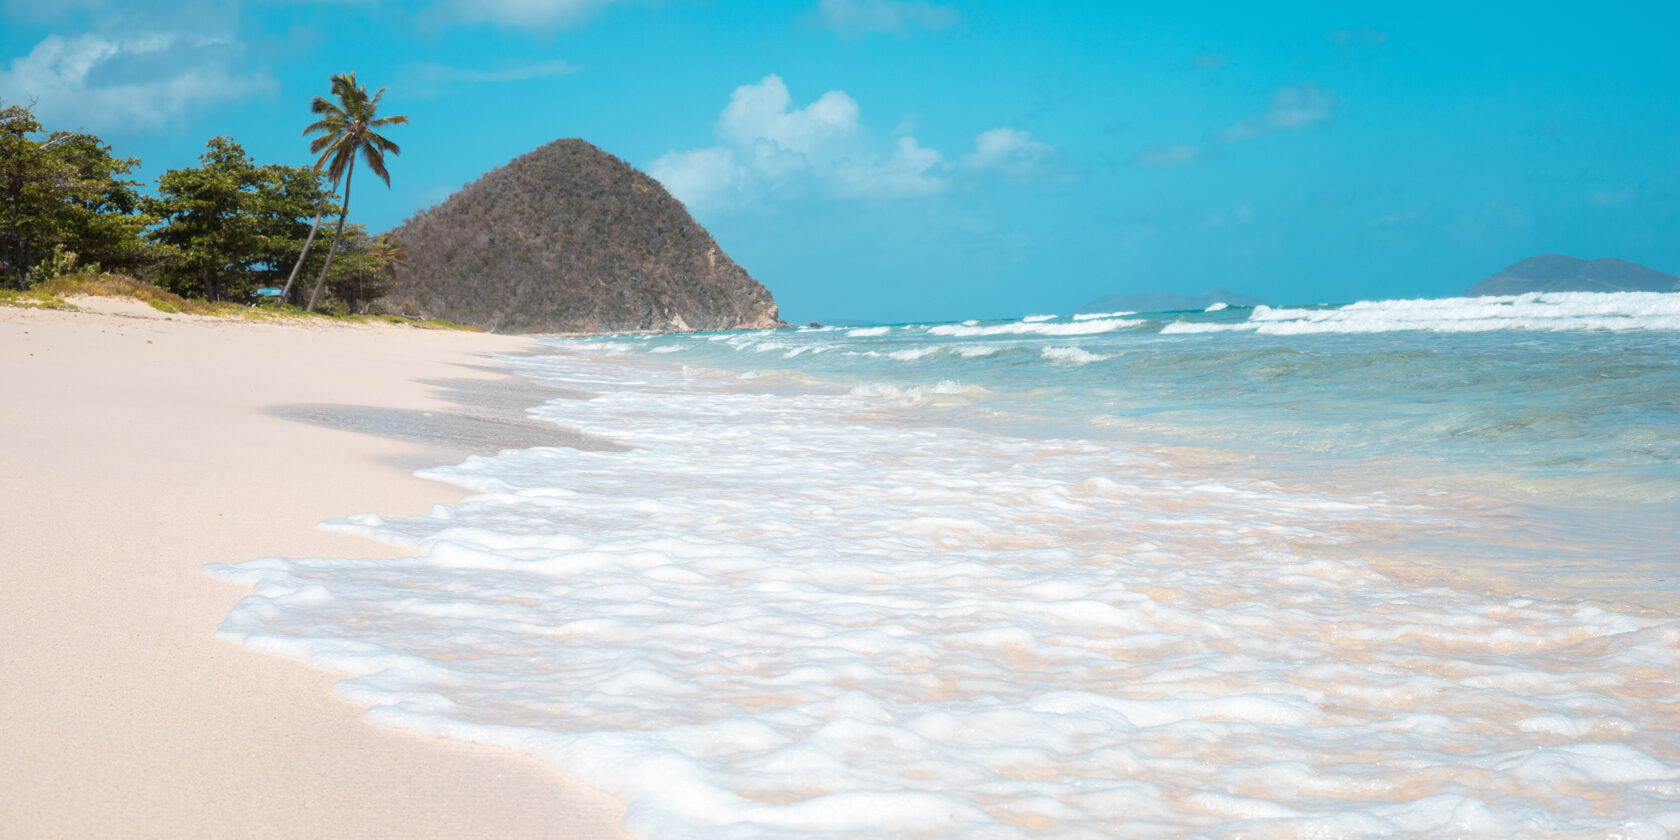 A beach on the island of Tortola with waves and palm trees